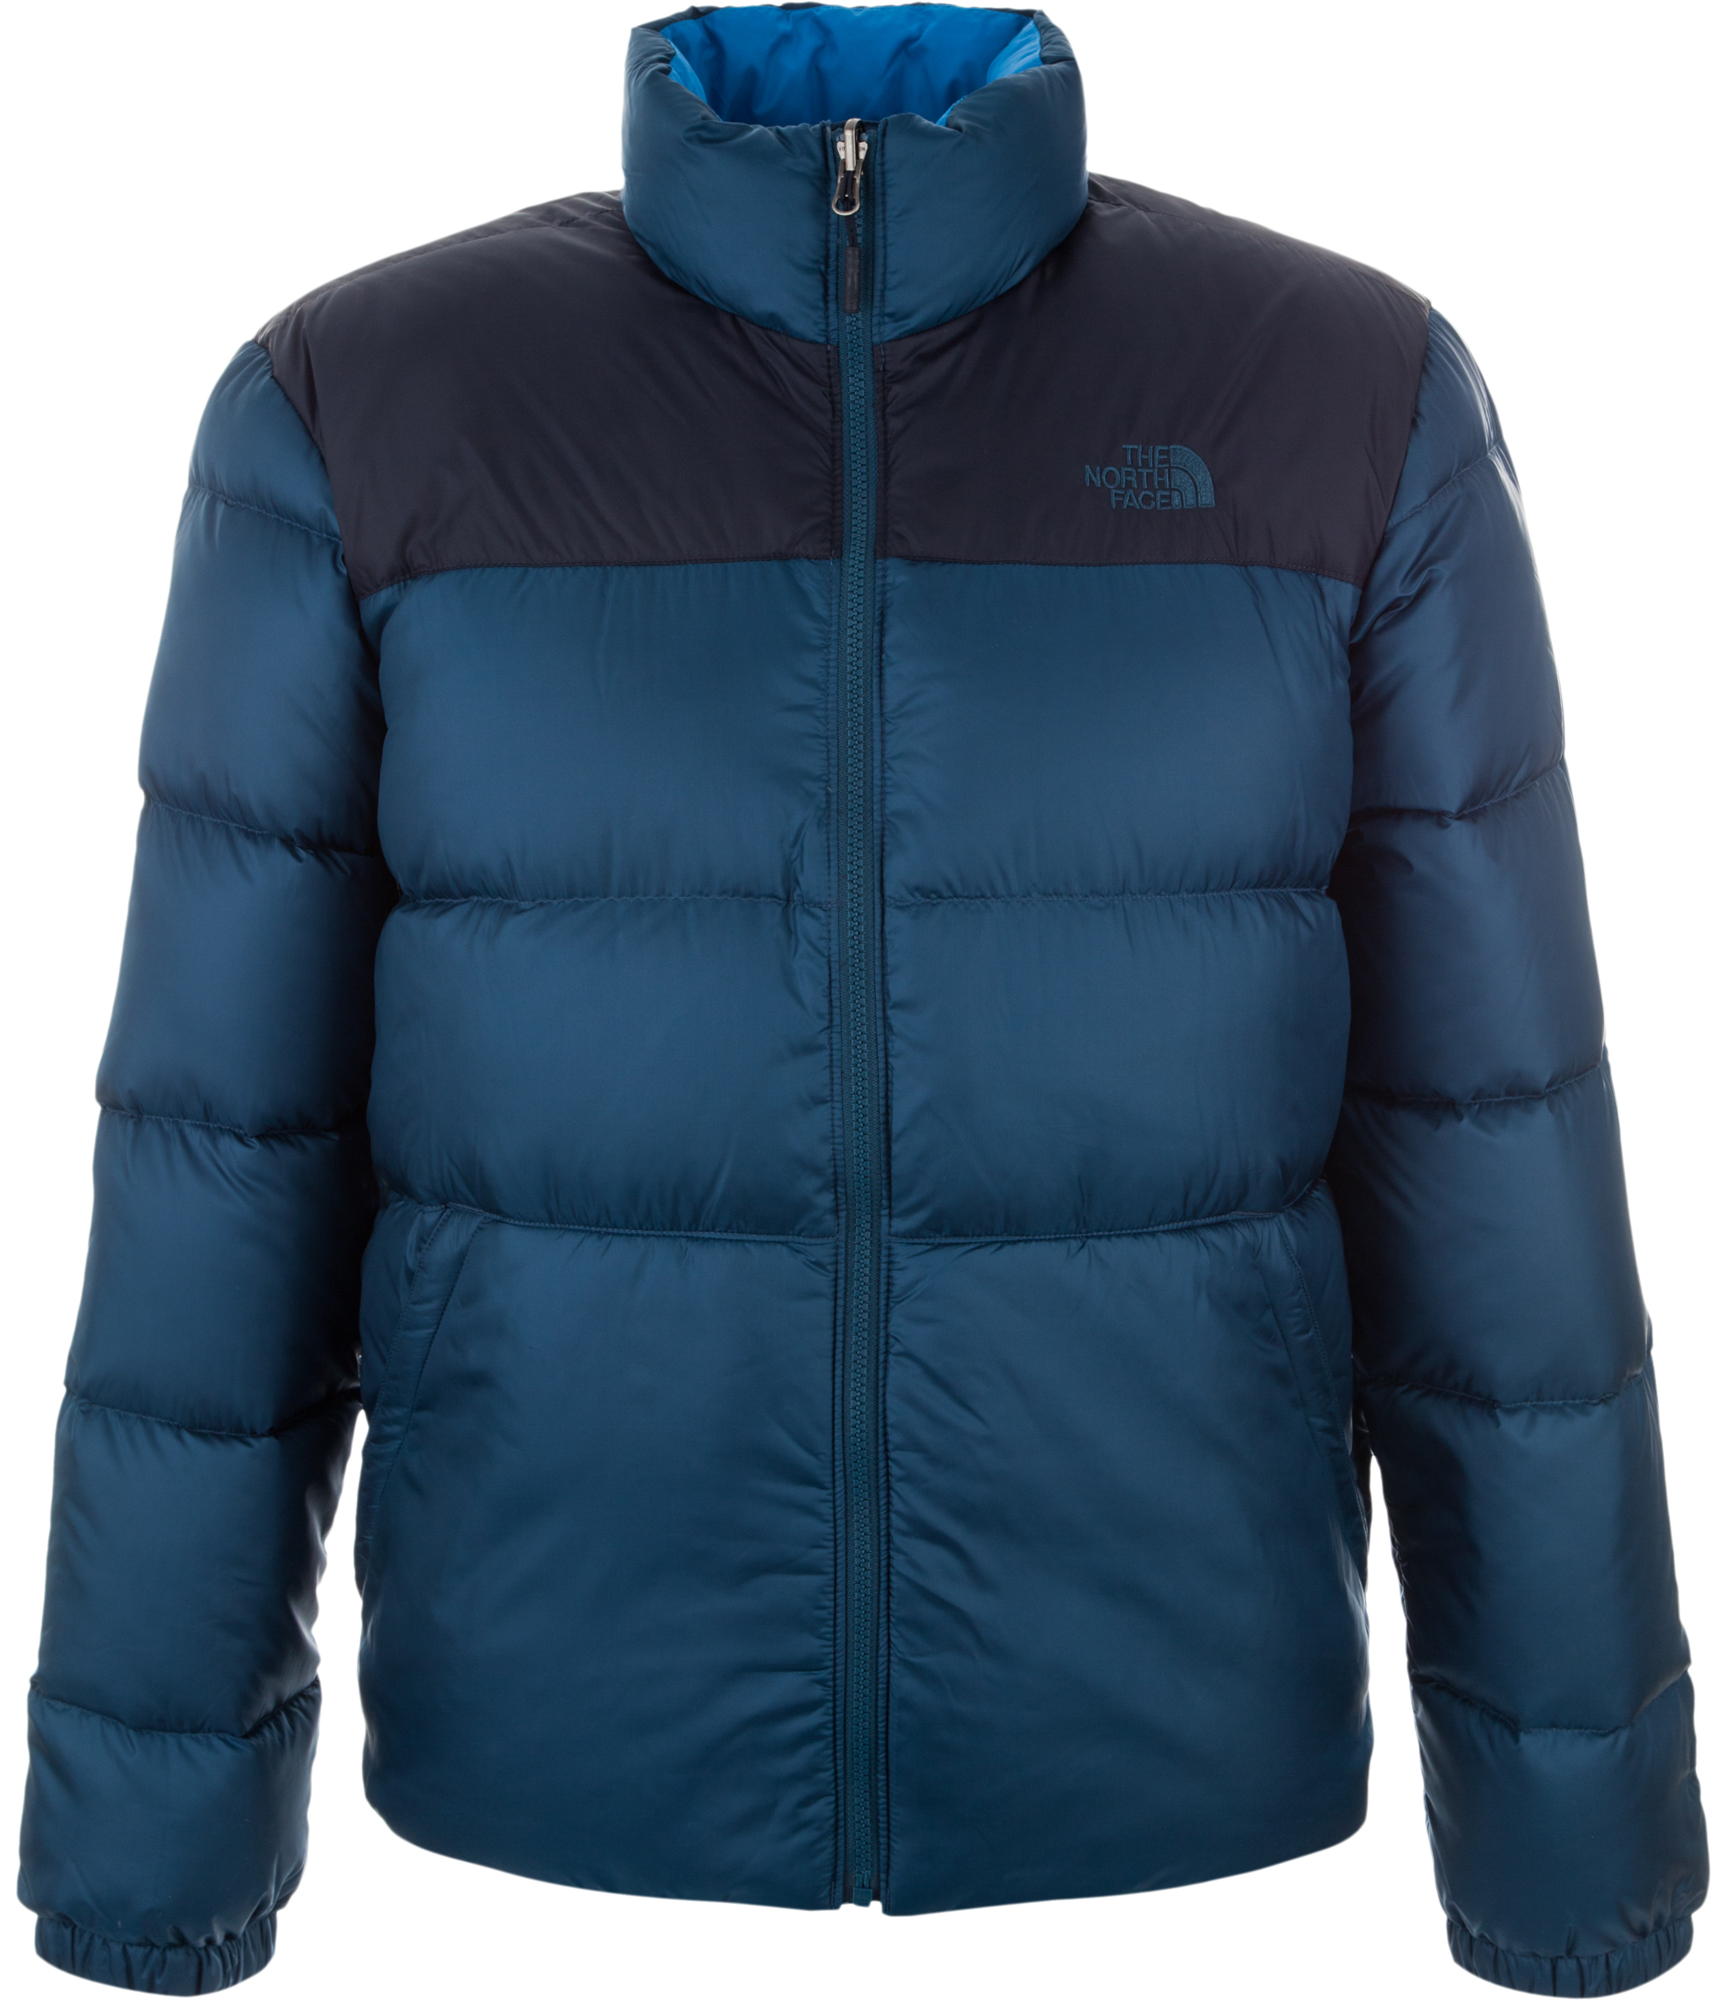 The North Face Куртка пуховая мужская The North Face Nuptse Iii the north face бермуды